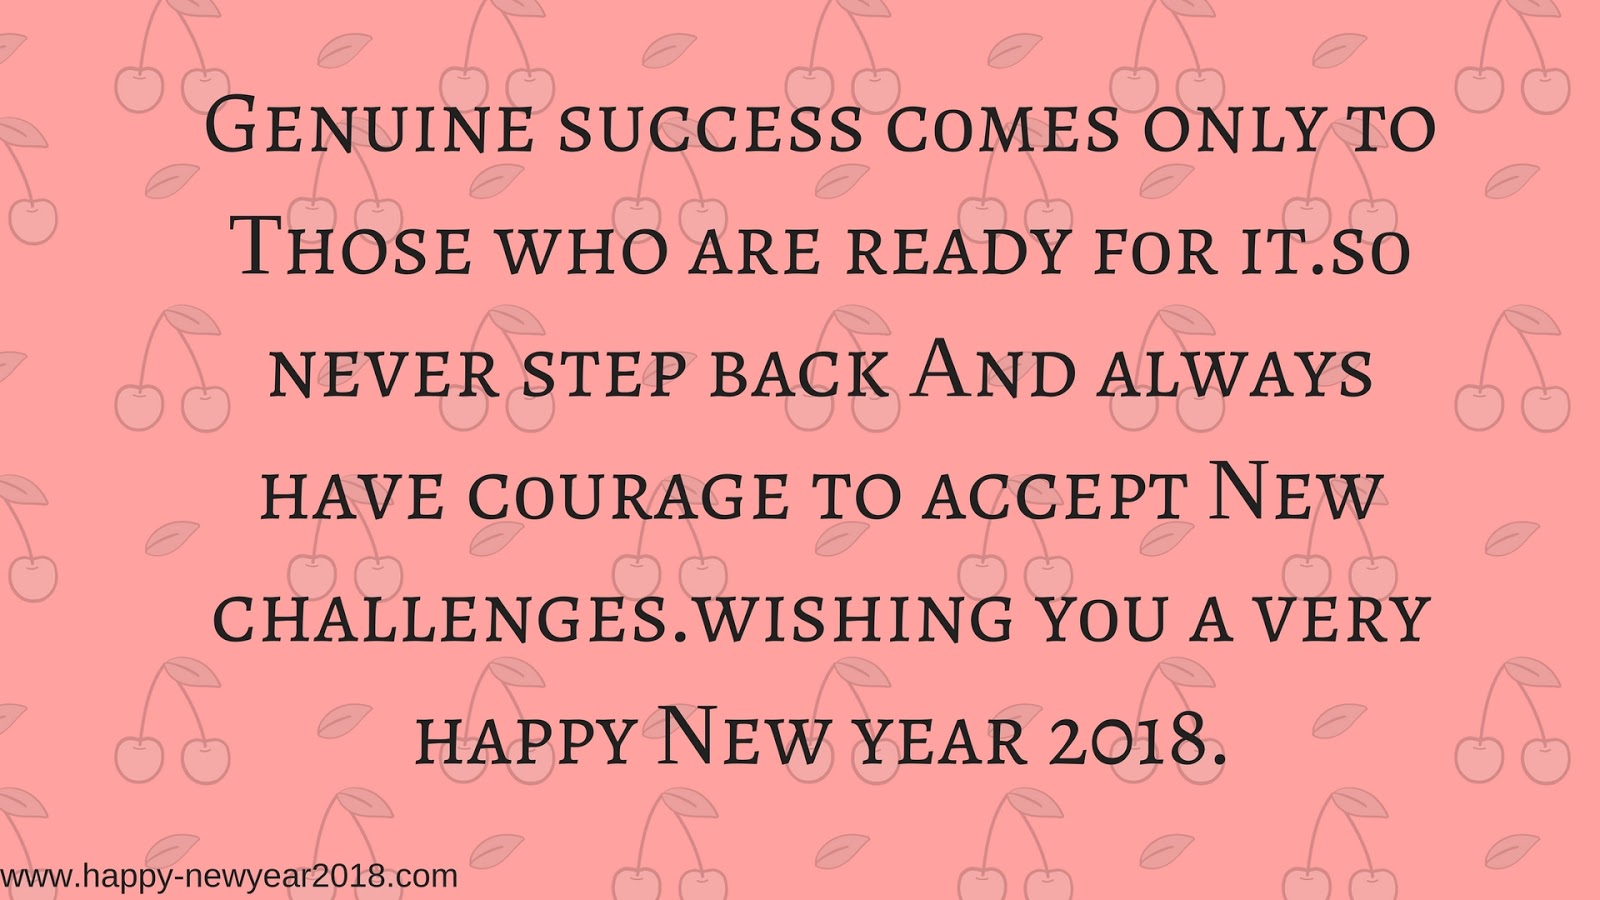 happy new year 2018 quotes happy new year 2018 wallpaper happy new year images 2018